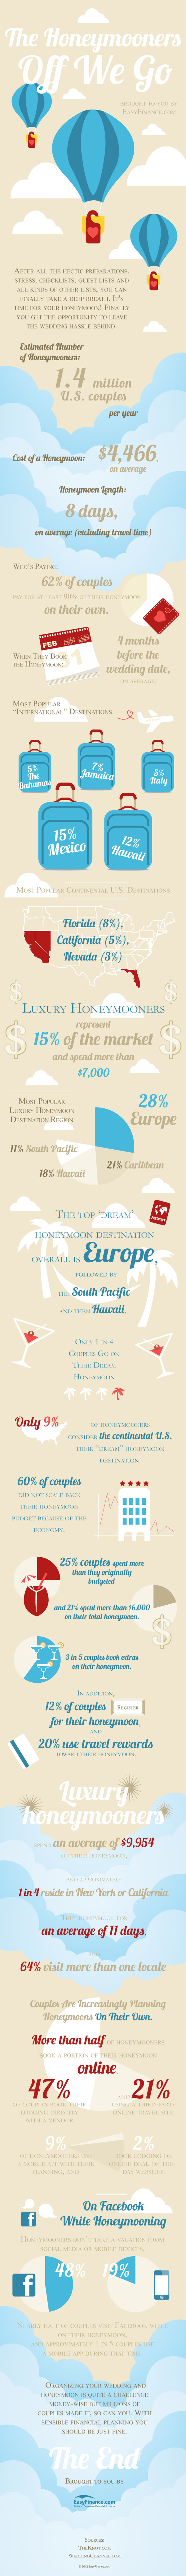 http://www.easyfinance.com/blog/the-honeymooners-off-we-go-infographic/